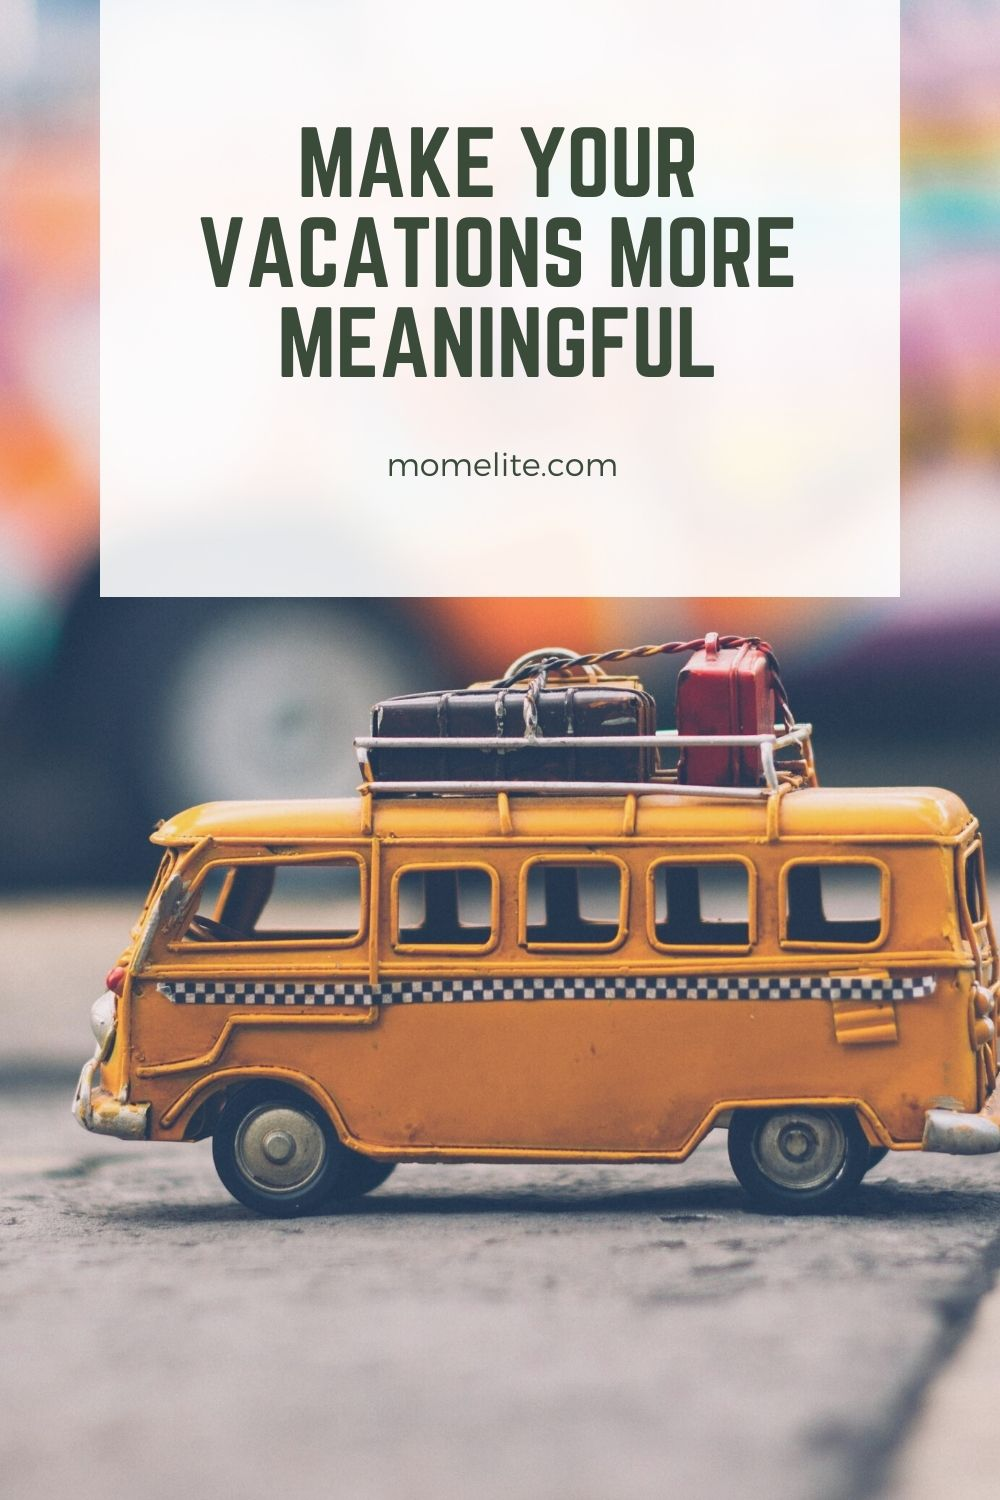 Make Your Vacations More Meaningful